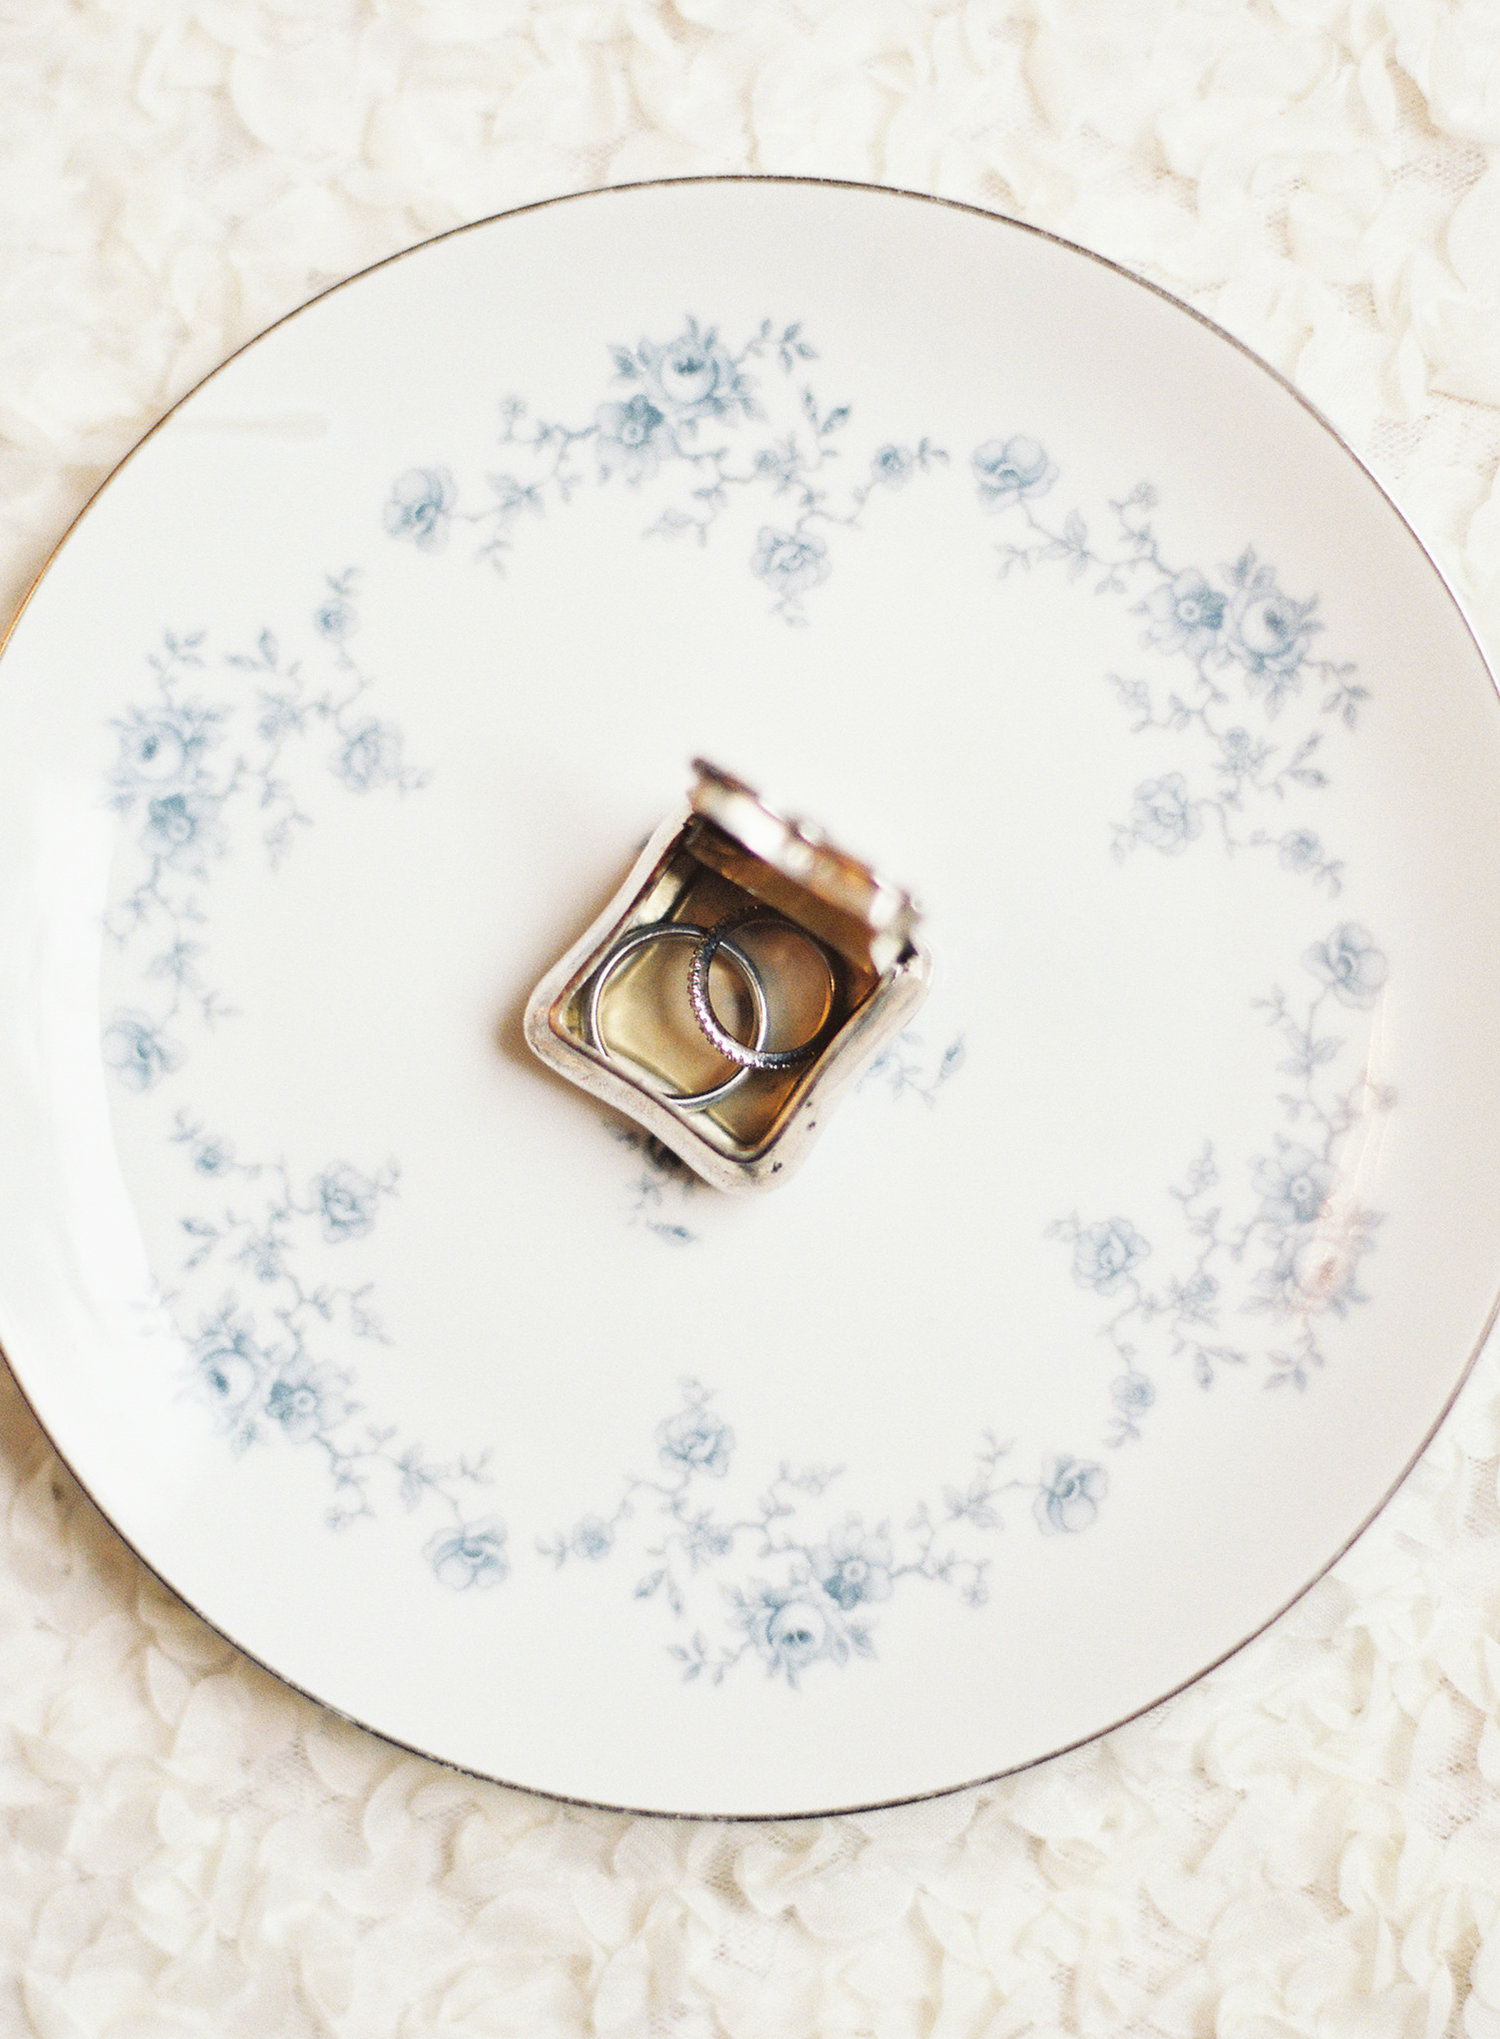 wedding rings in a gold box on top of a white and blue china plate